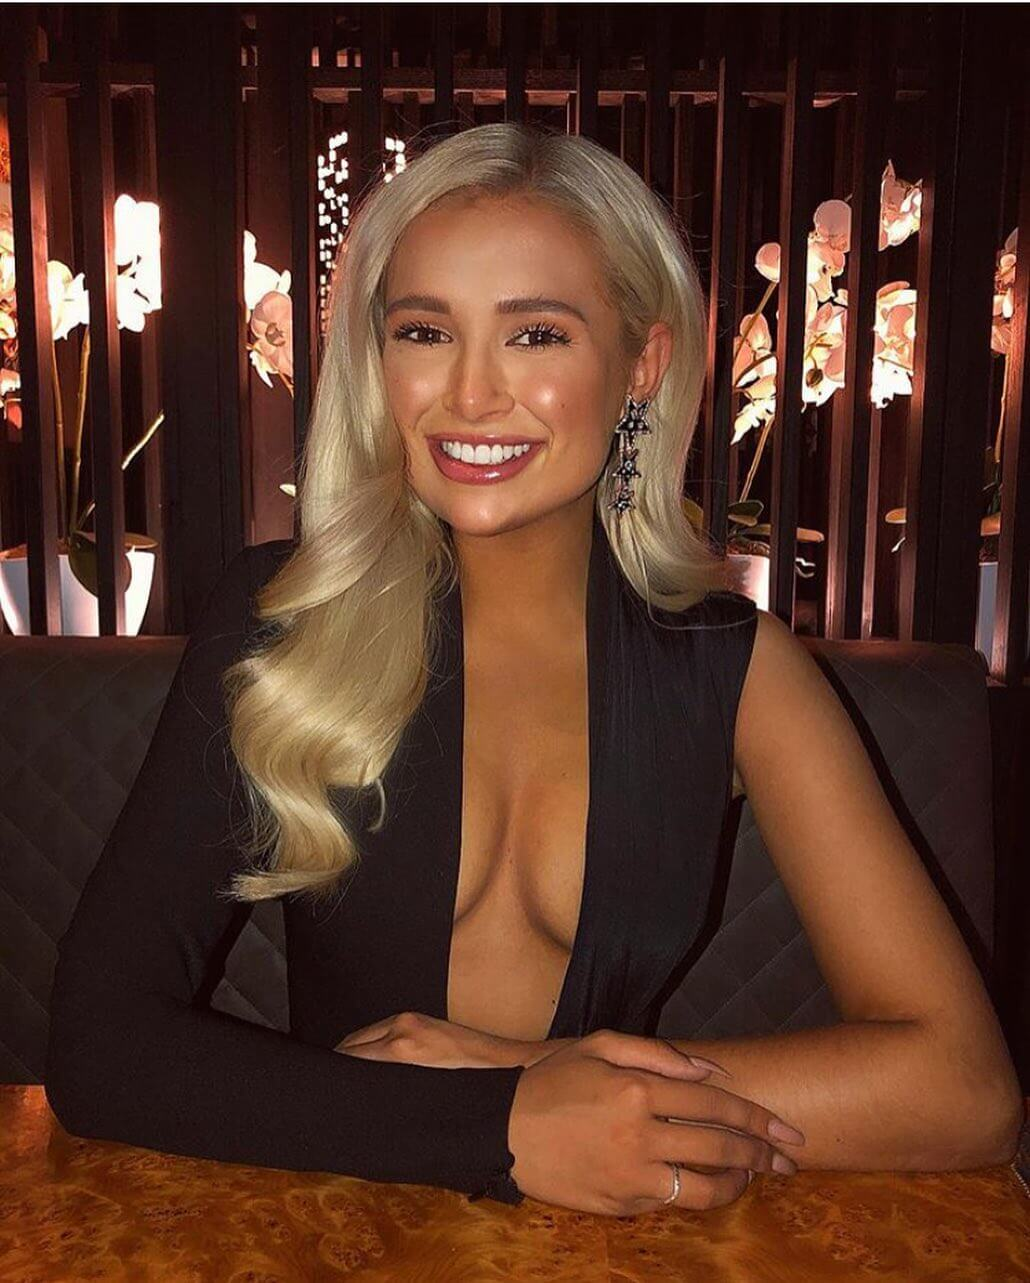 Molly-Mae Hague hot cleavage photo